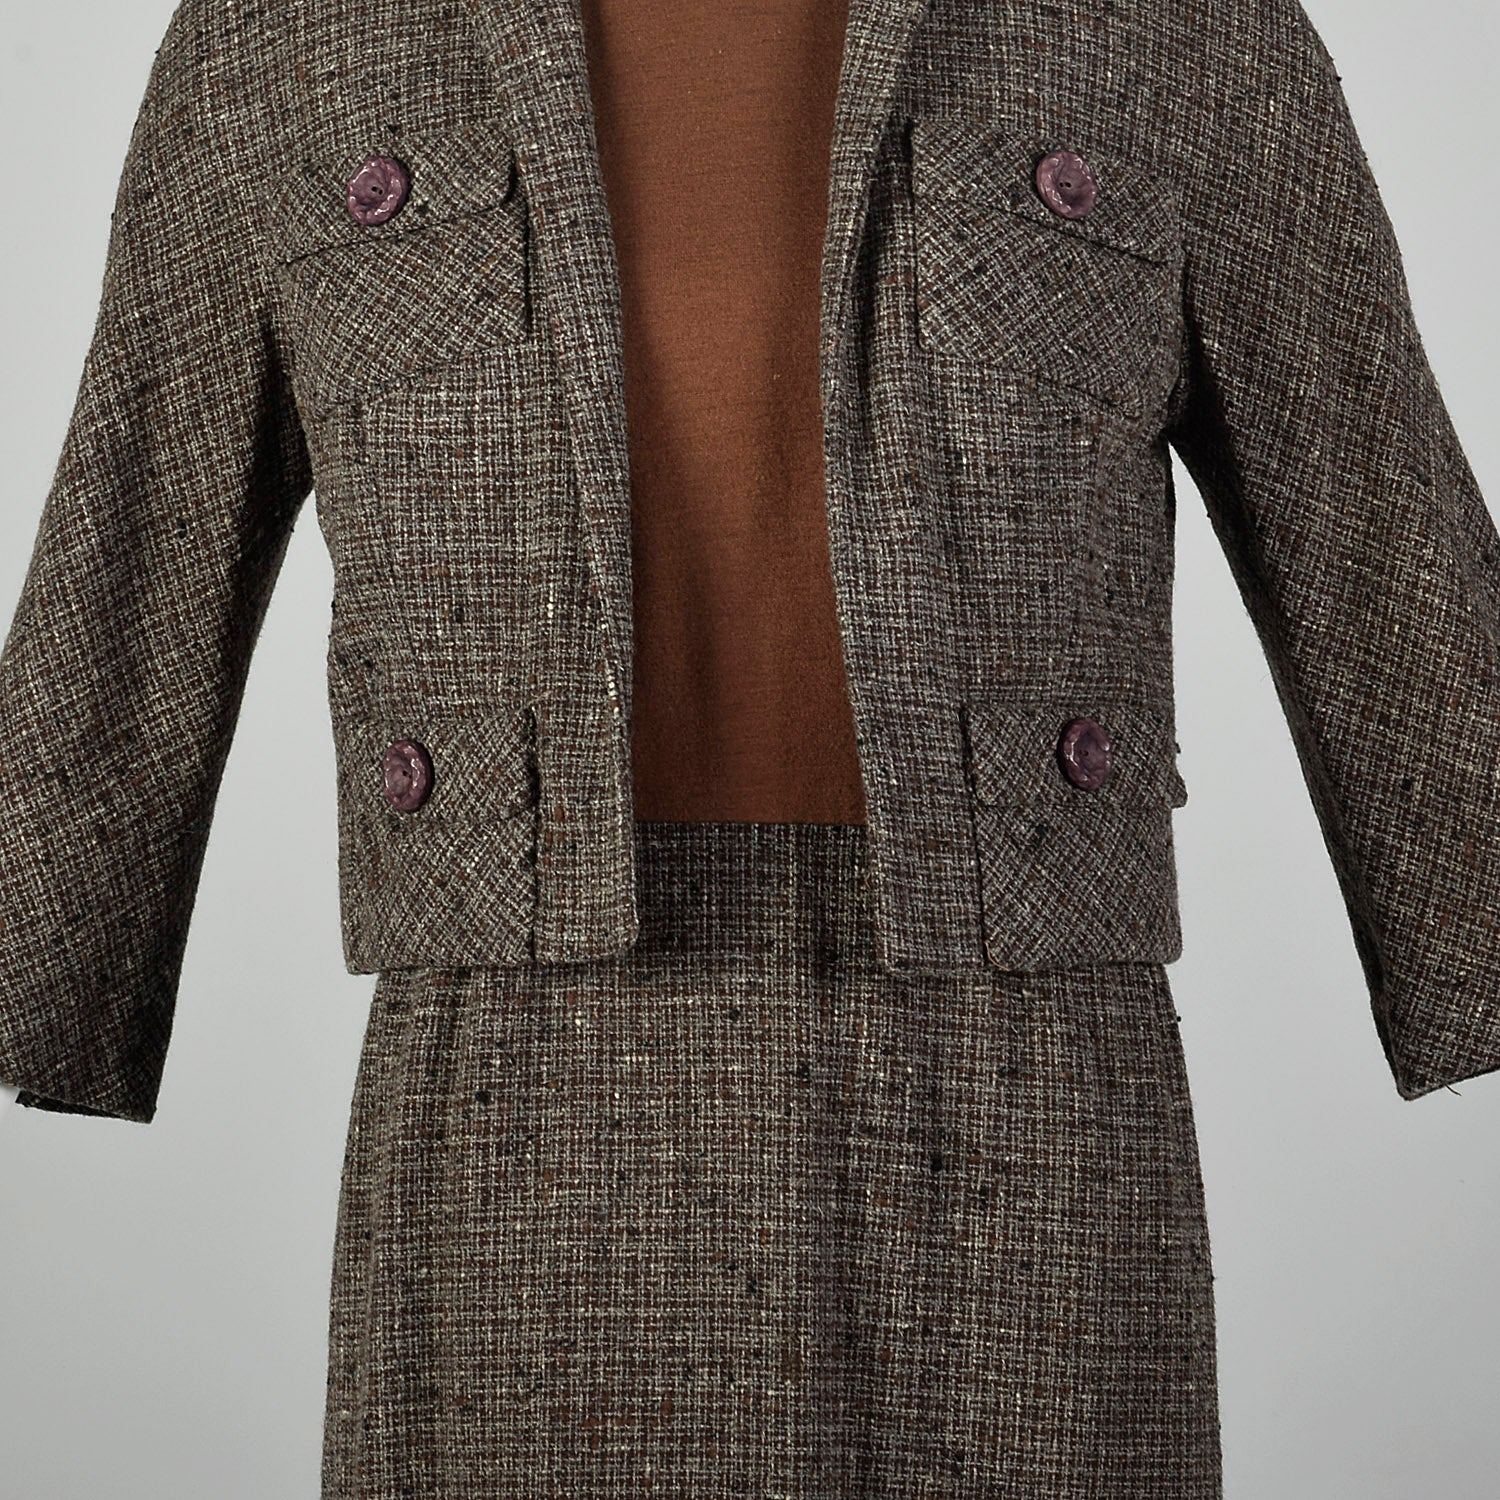 Small Brown Knit and Tweed 1960s Dress Set